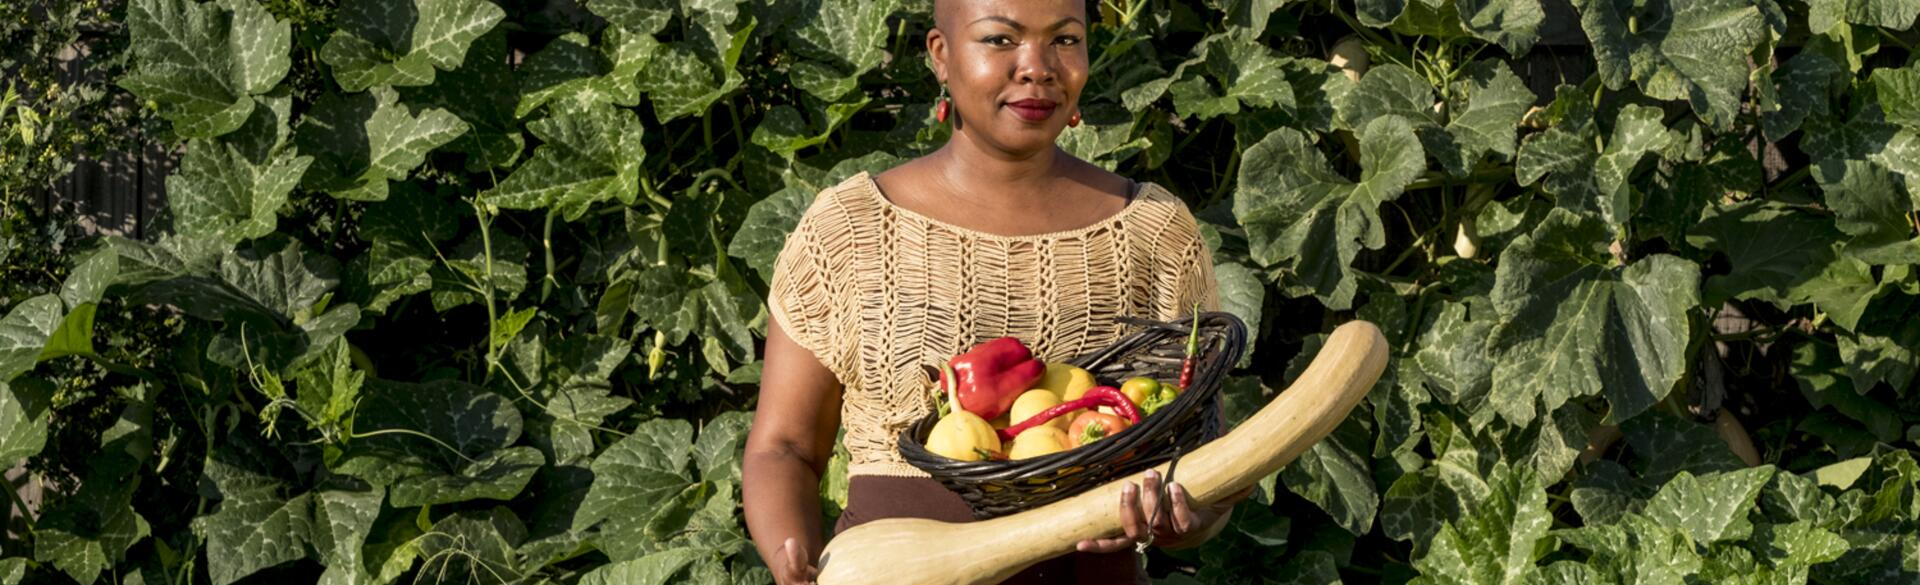 author towanna standing outside holding vegetables she grew in her garden